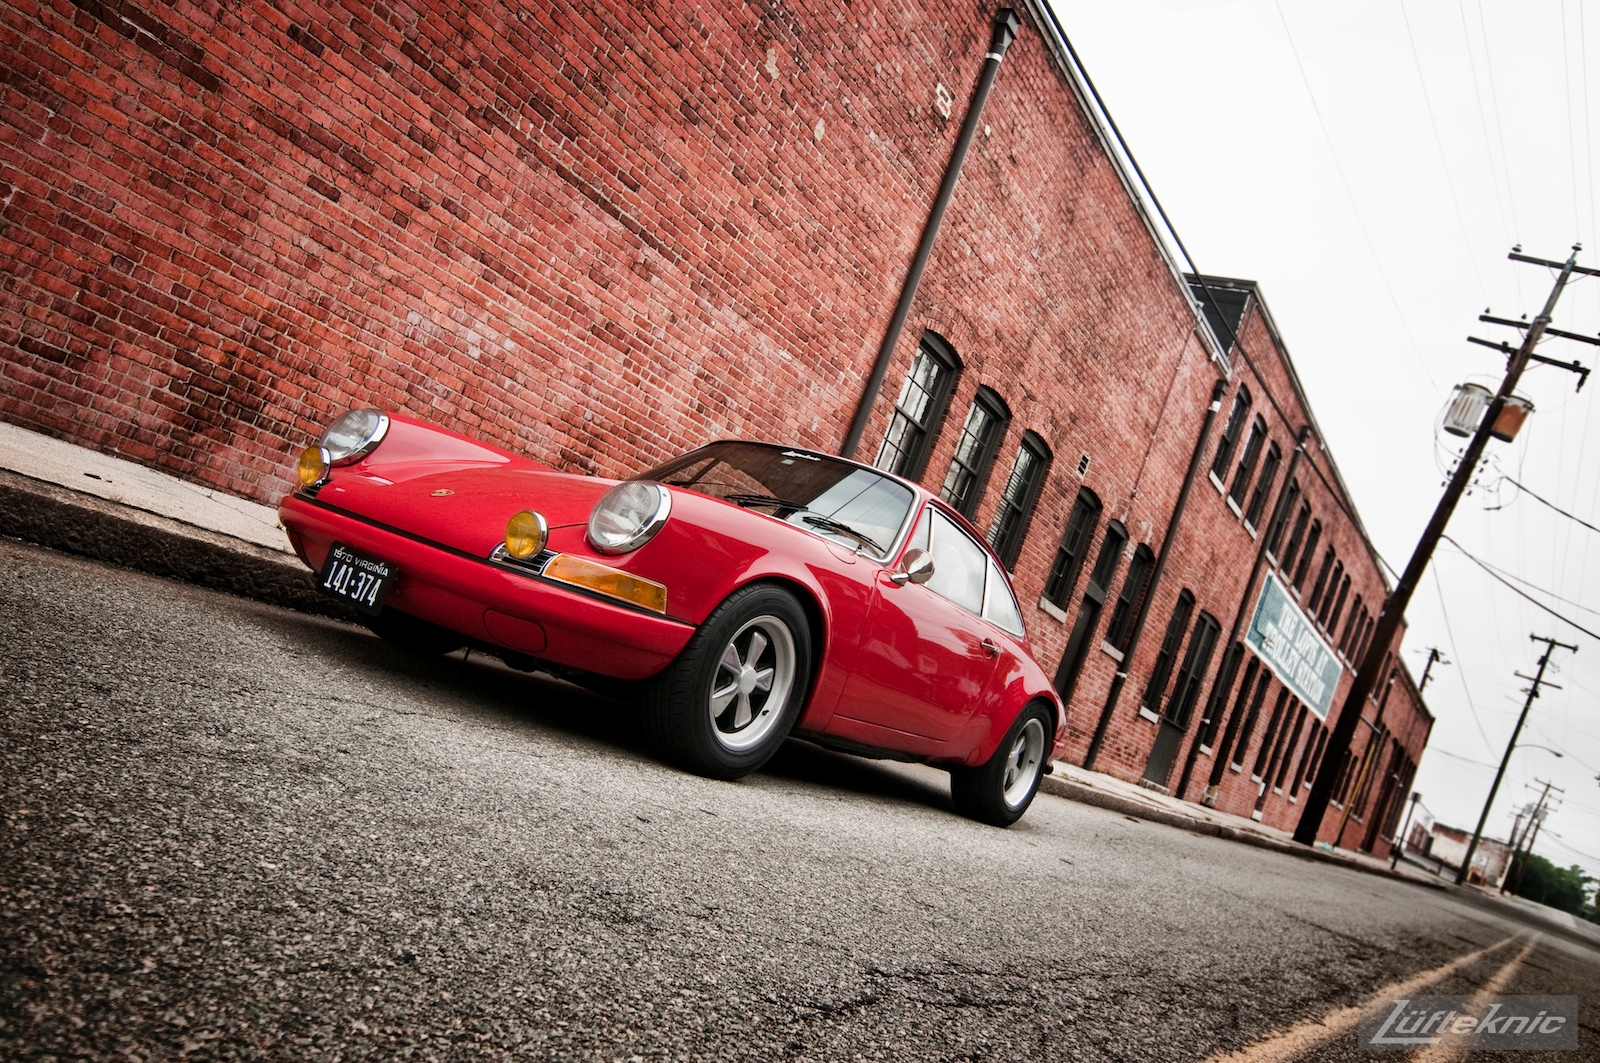 A red 1970 911E in front of an old brick building.